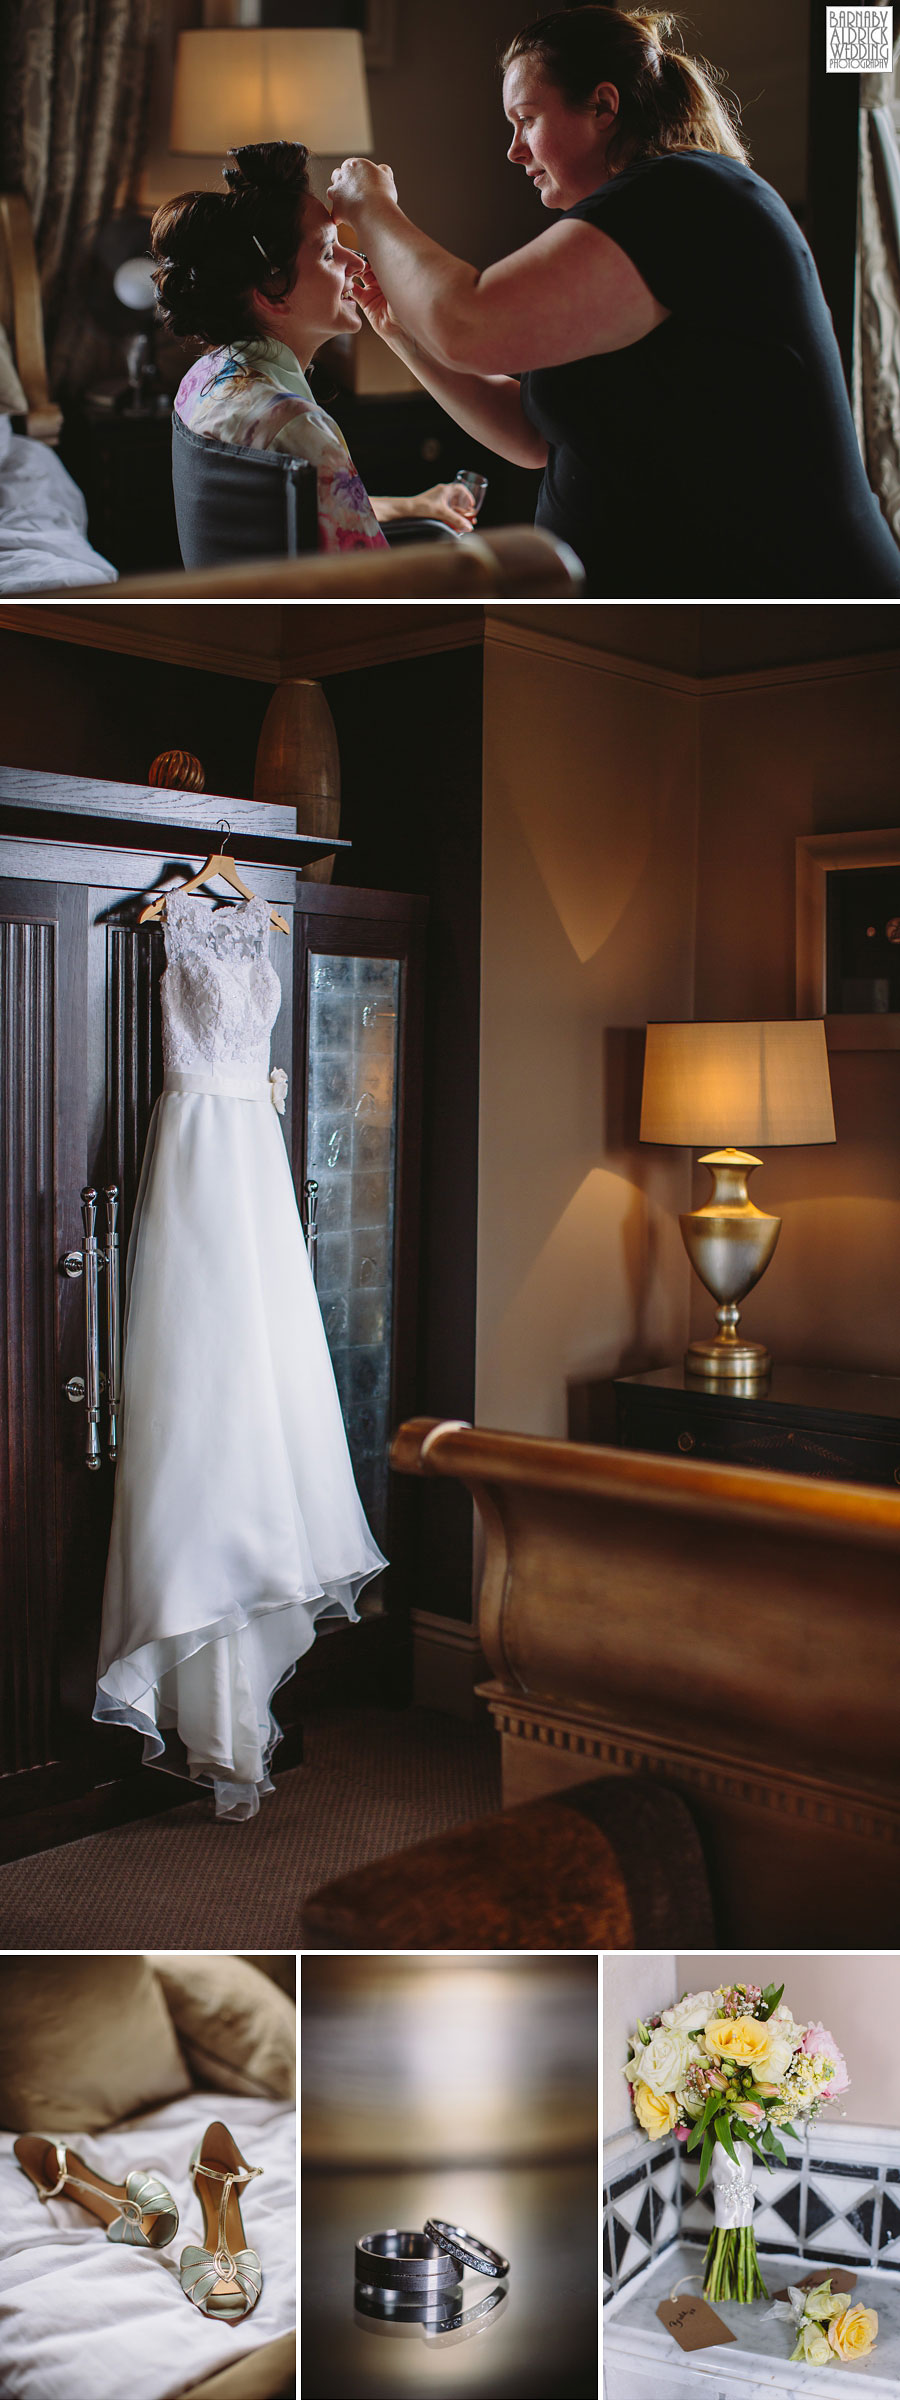 Wood Hall Linton Wetherby Wedding Photography 005